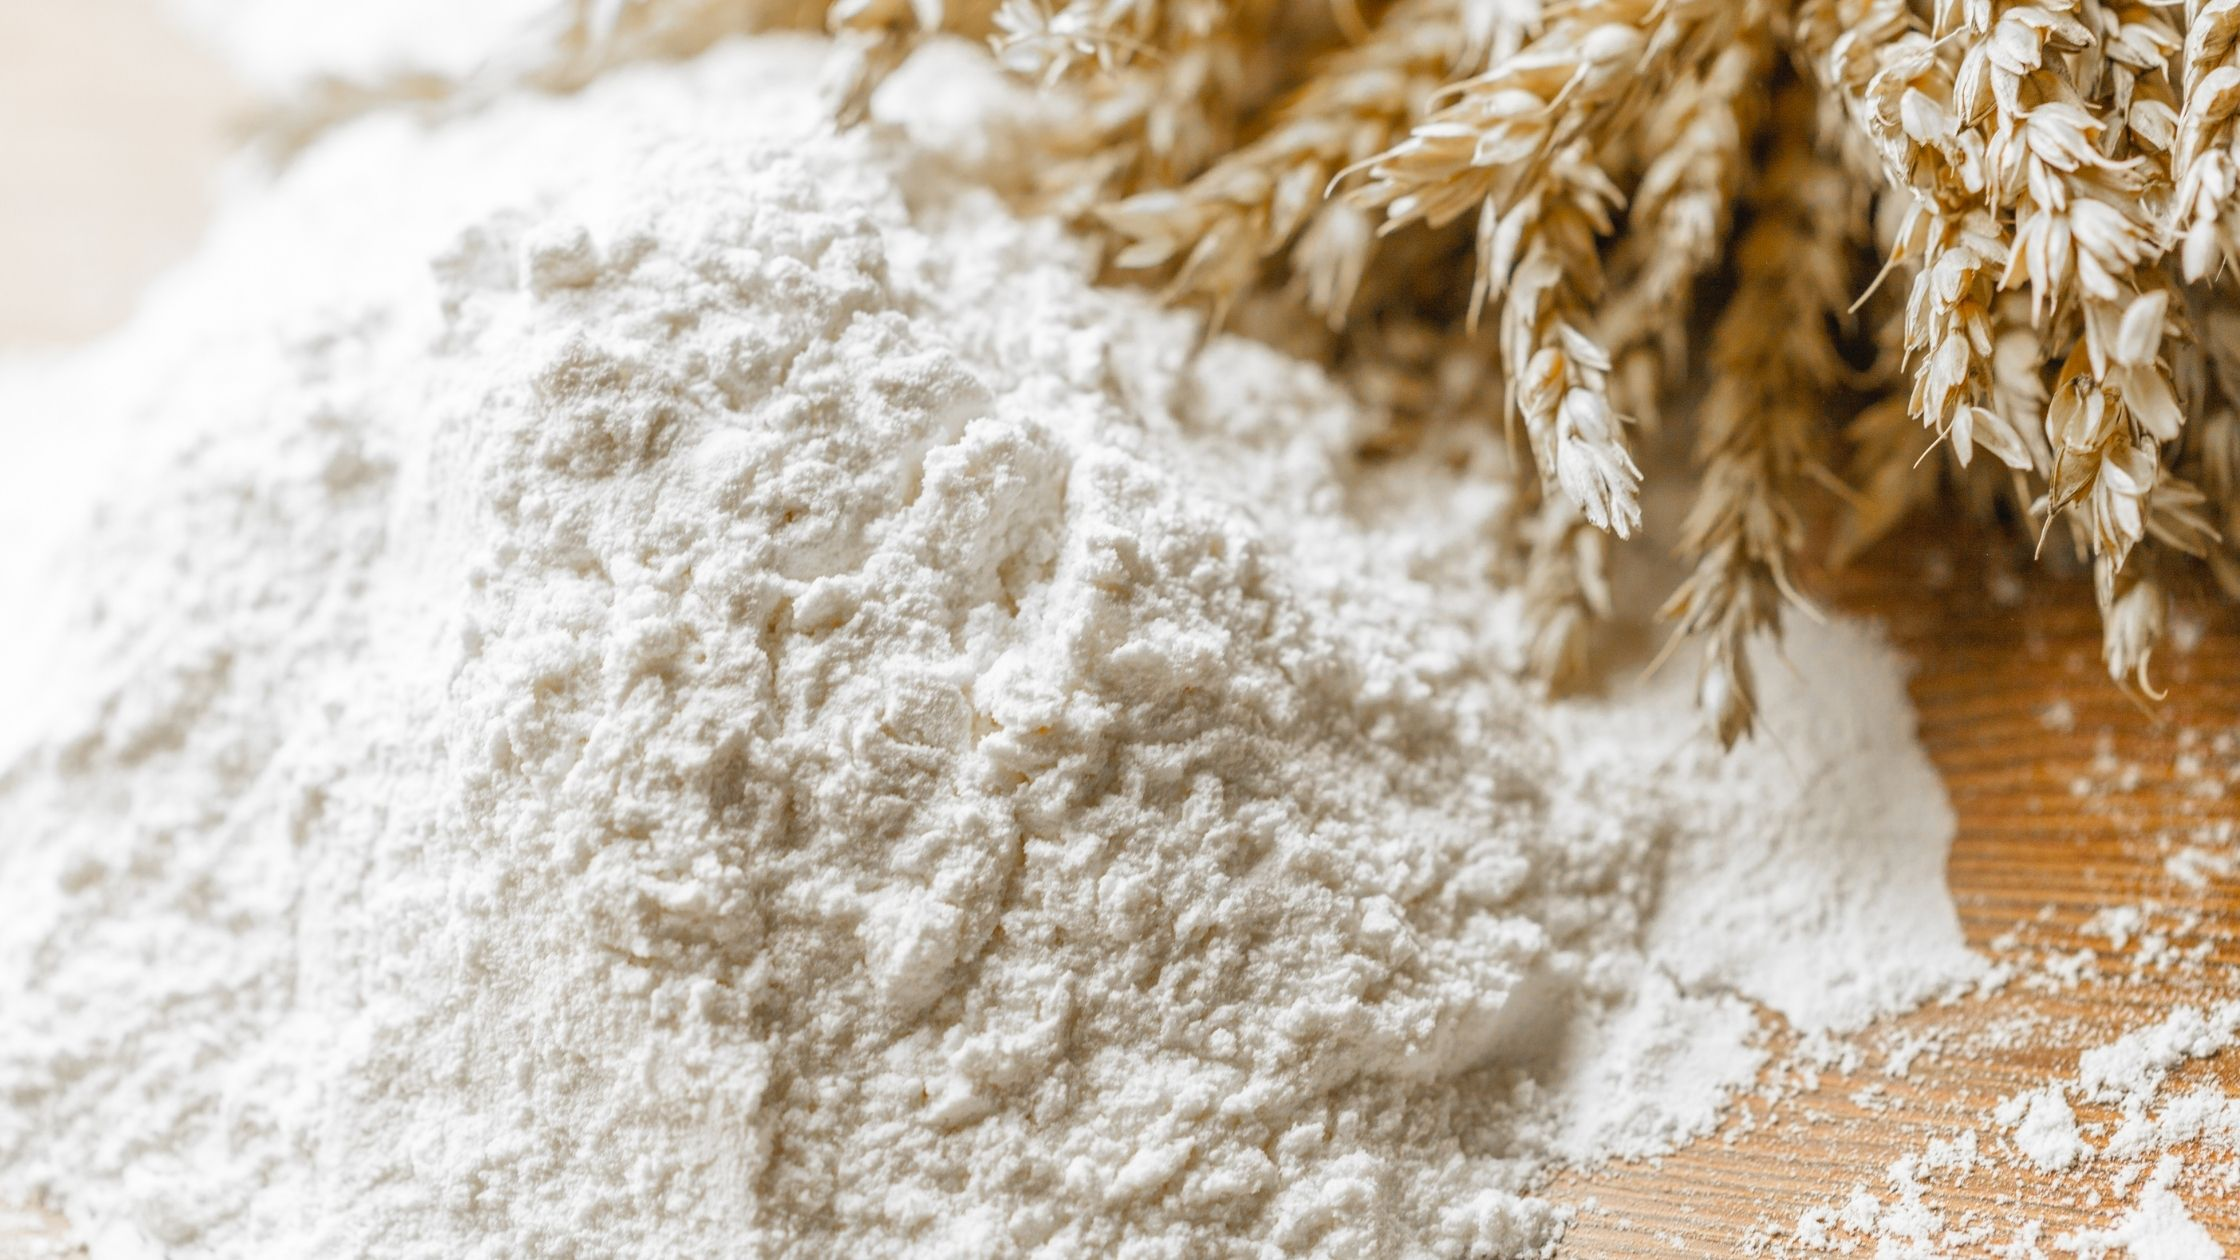 Is Flour Possible on A Keto Diet?